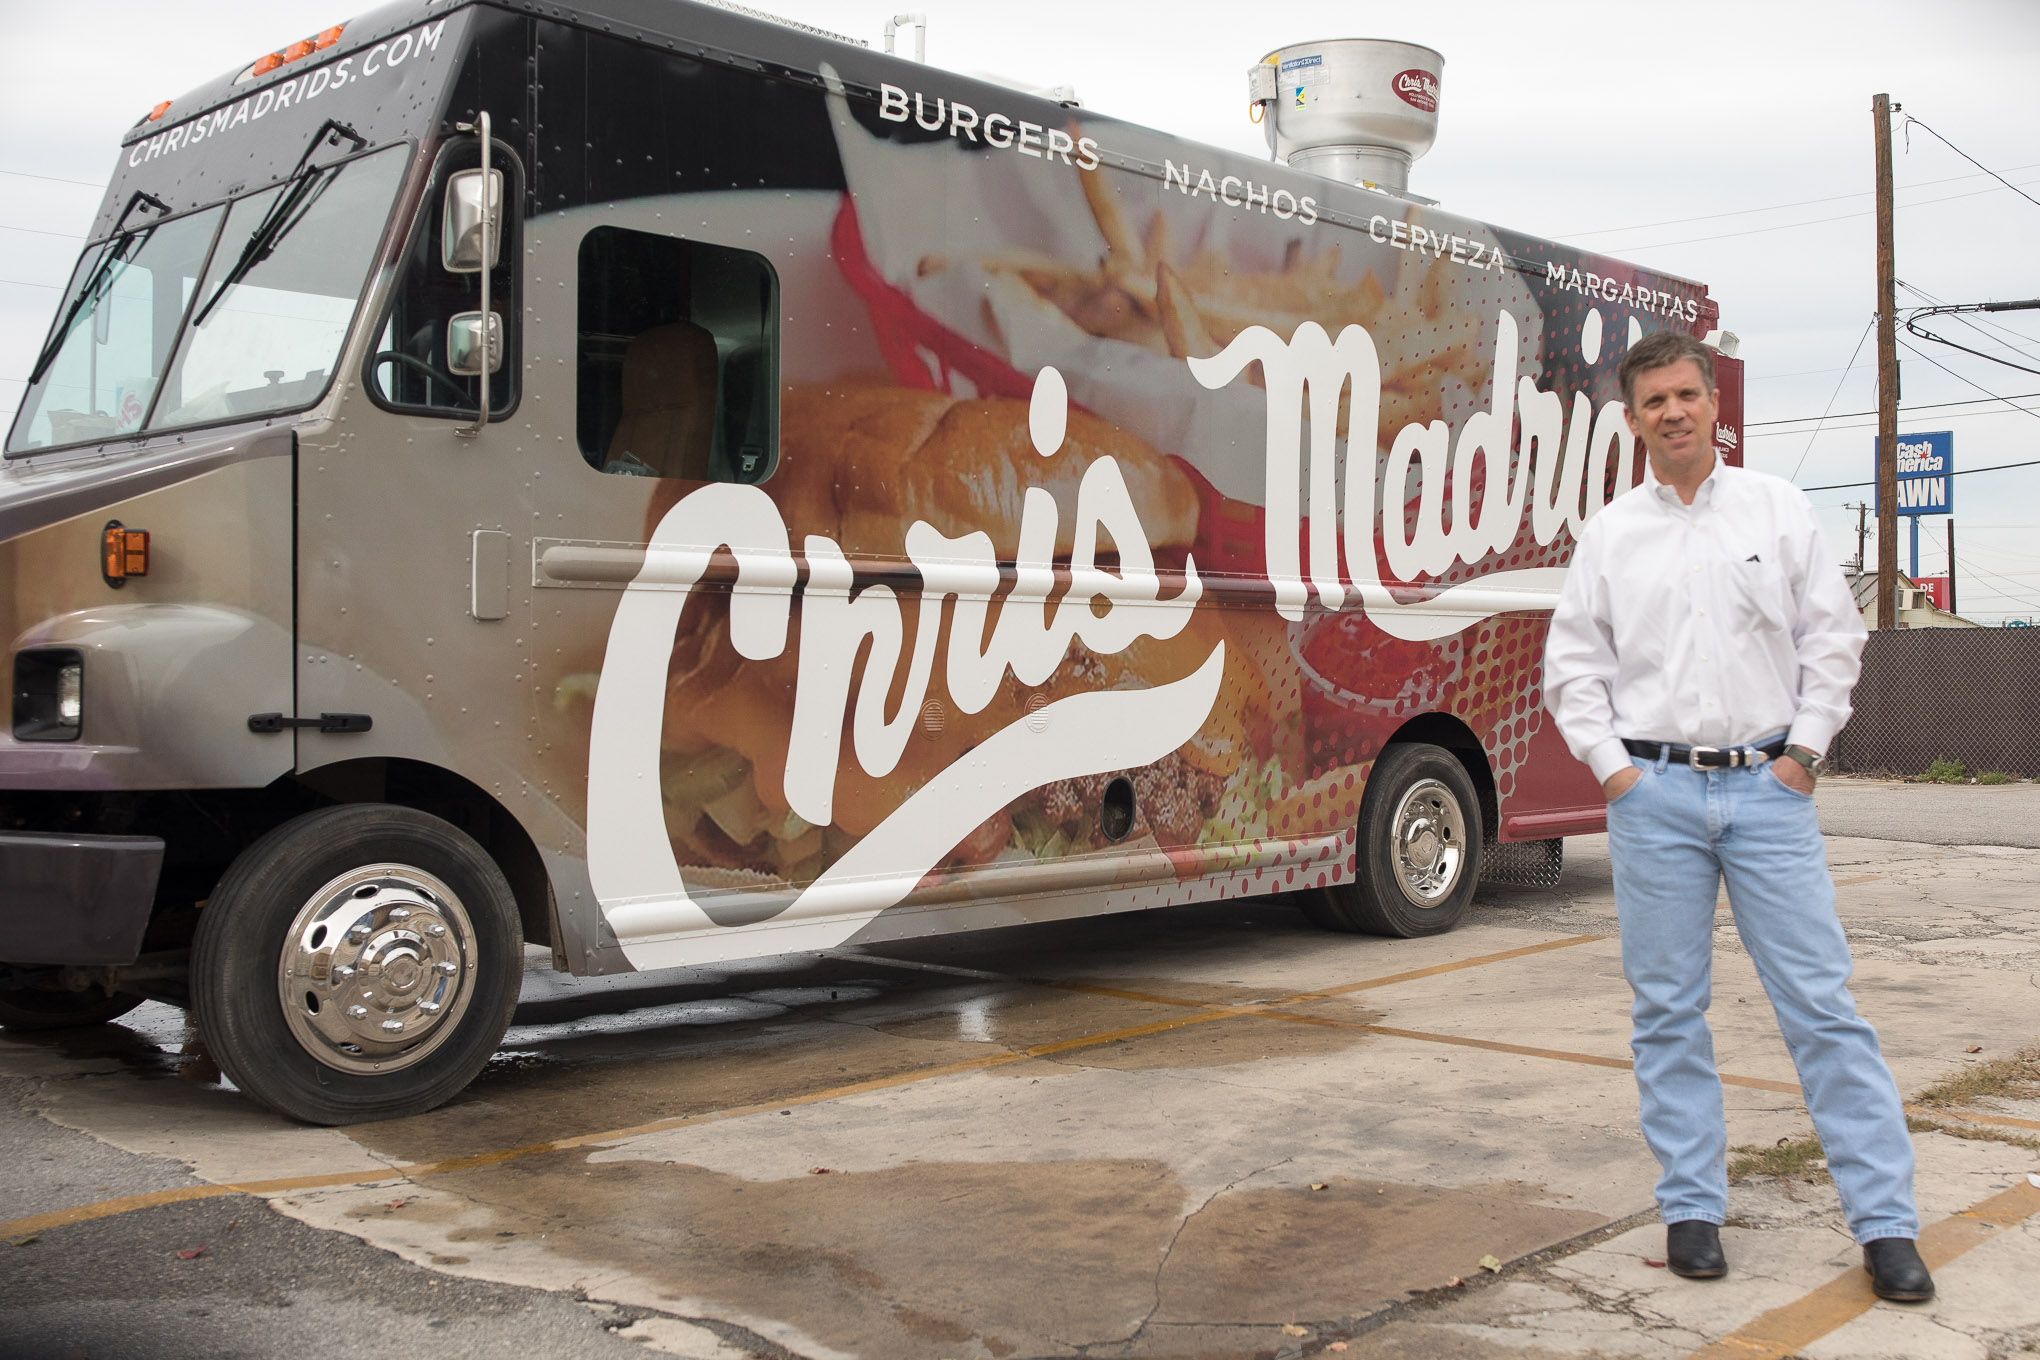 Richard Peacock stands in front of Chris Madrid's brand new food truck.